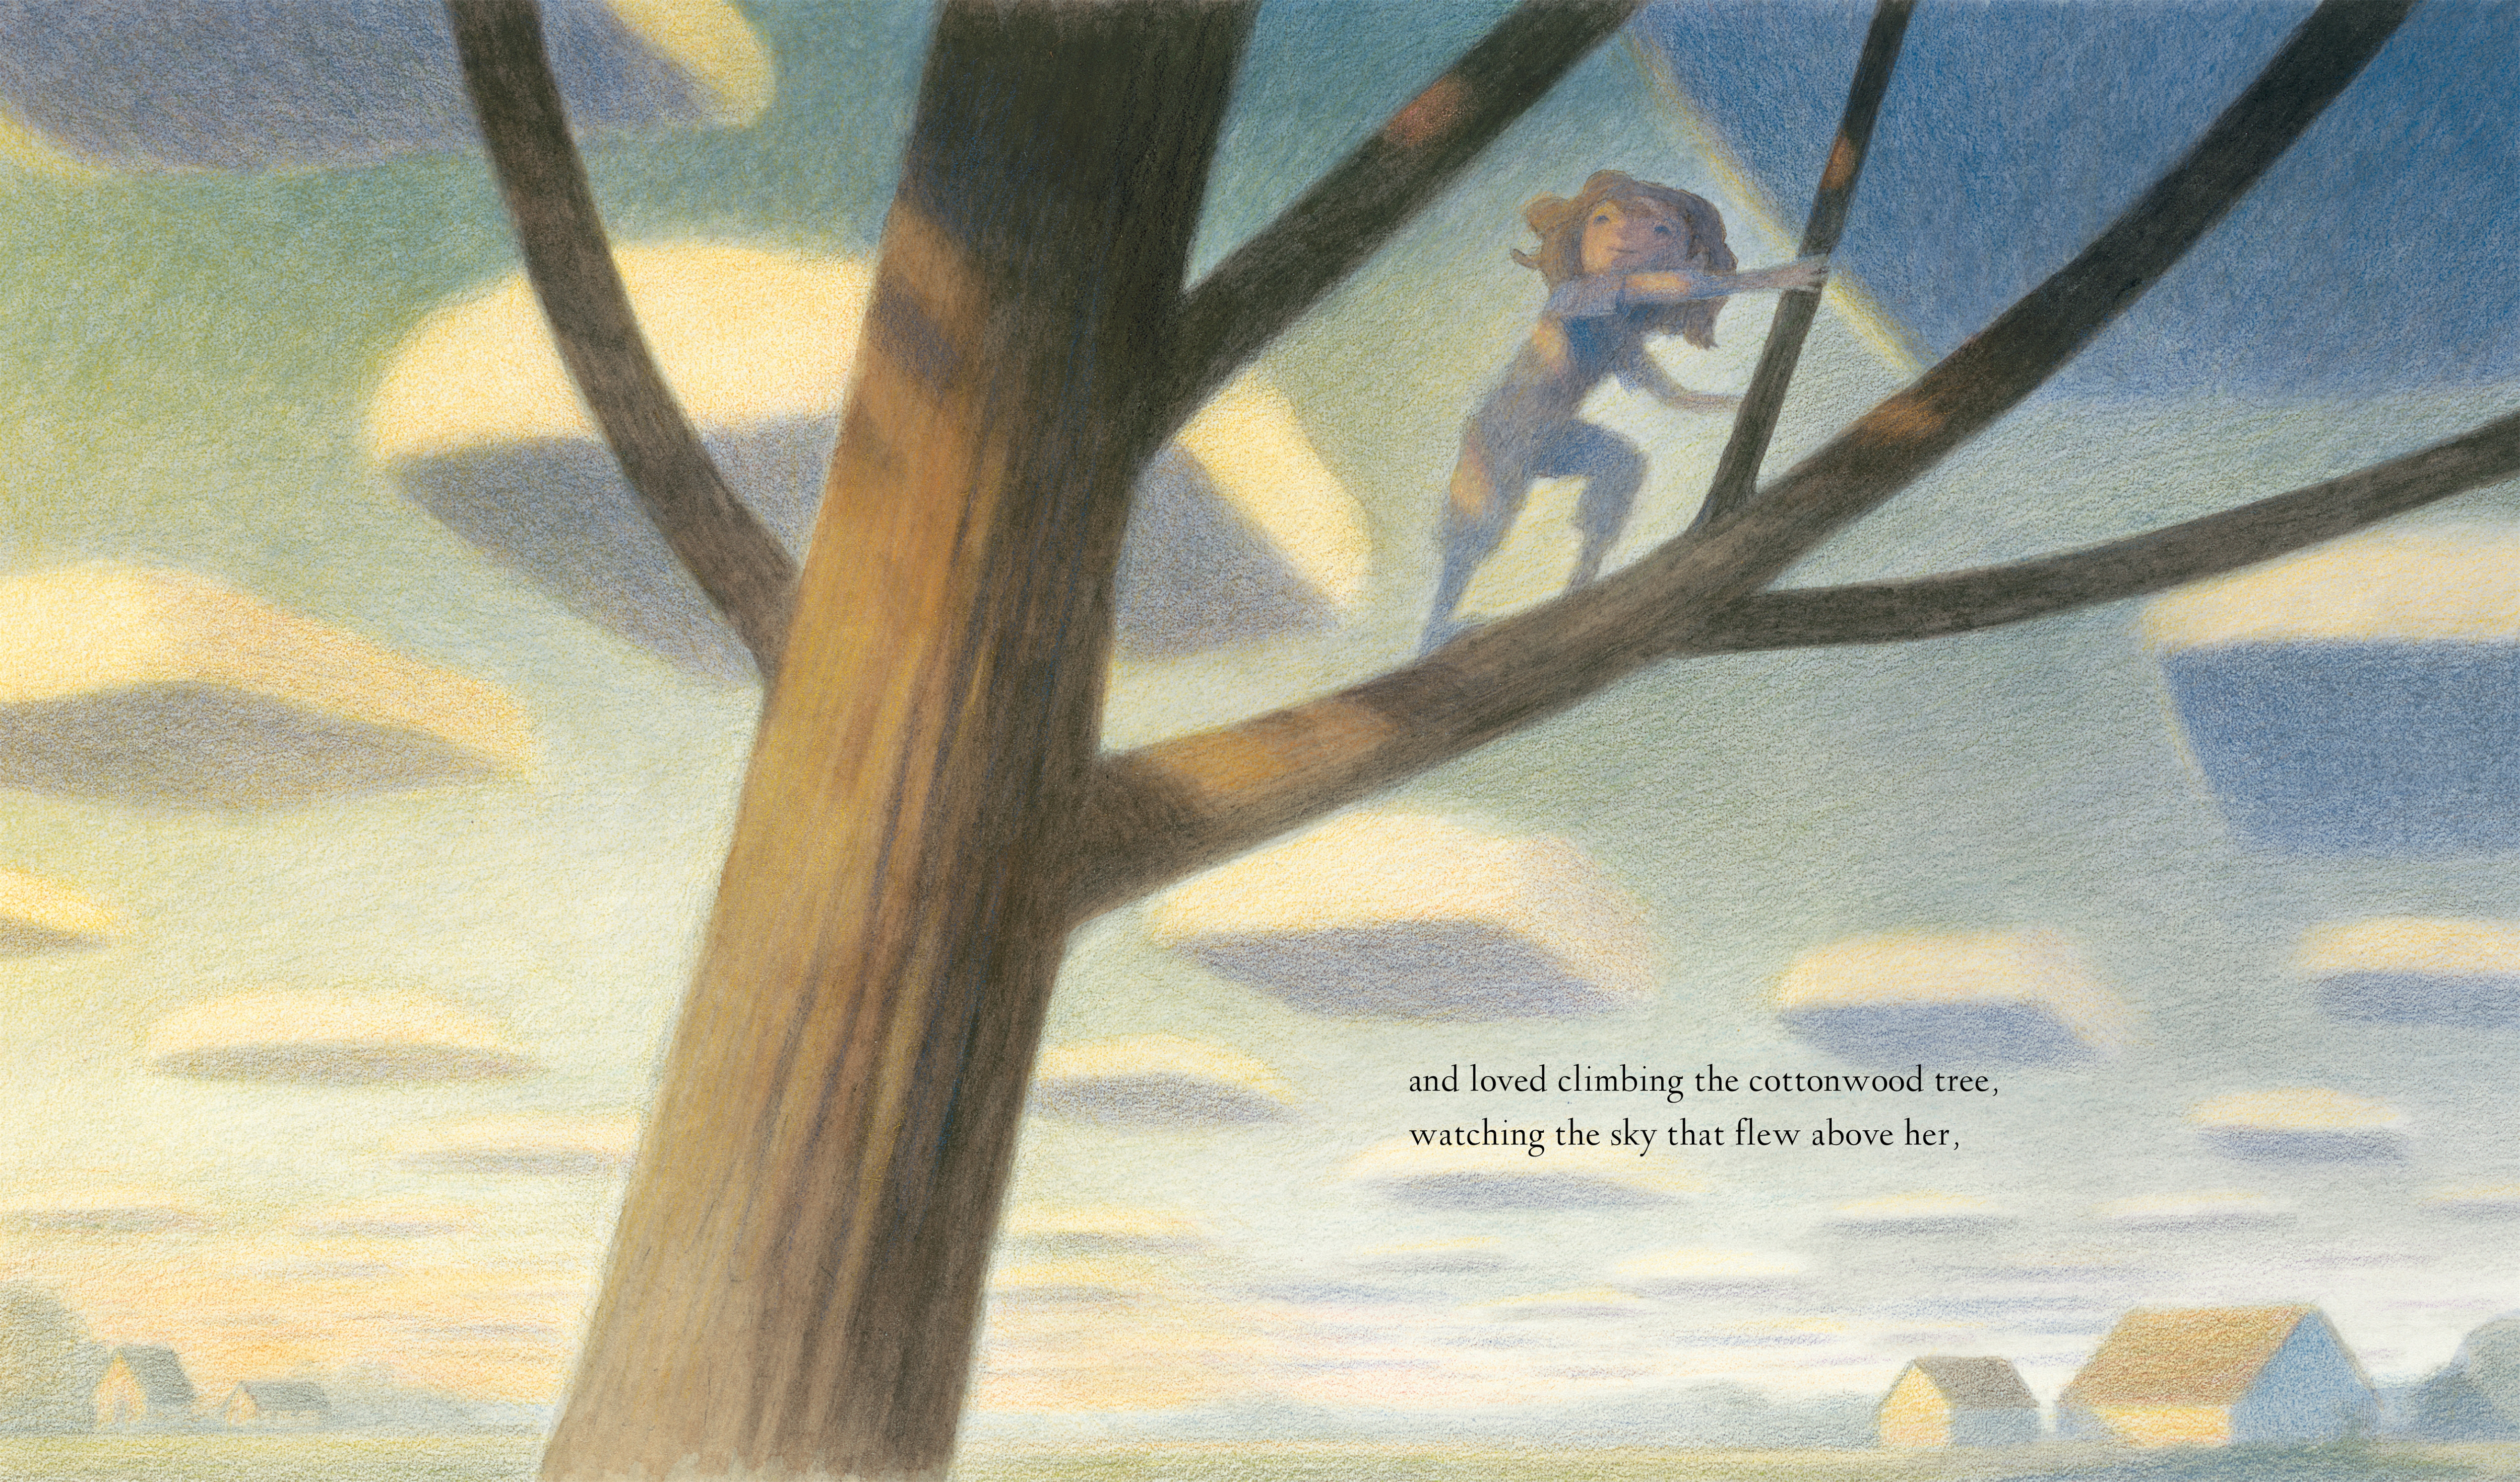 celebrate-picture-books-picture-book-review-someone-like-me-cottonwood-tree